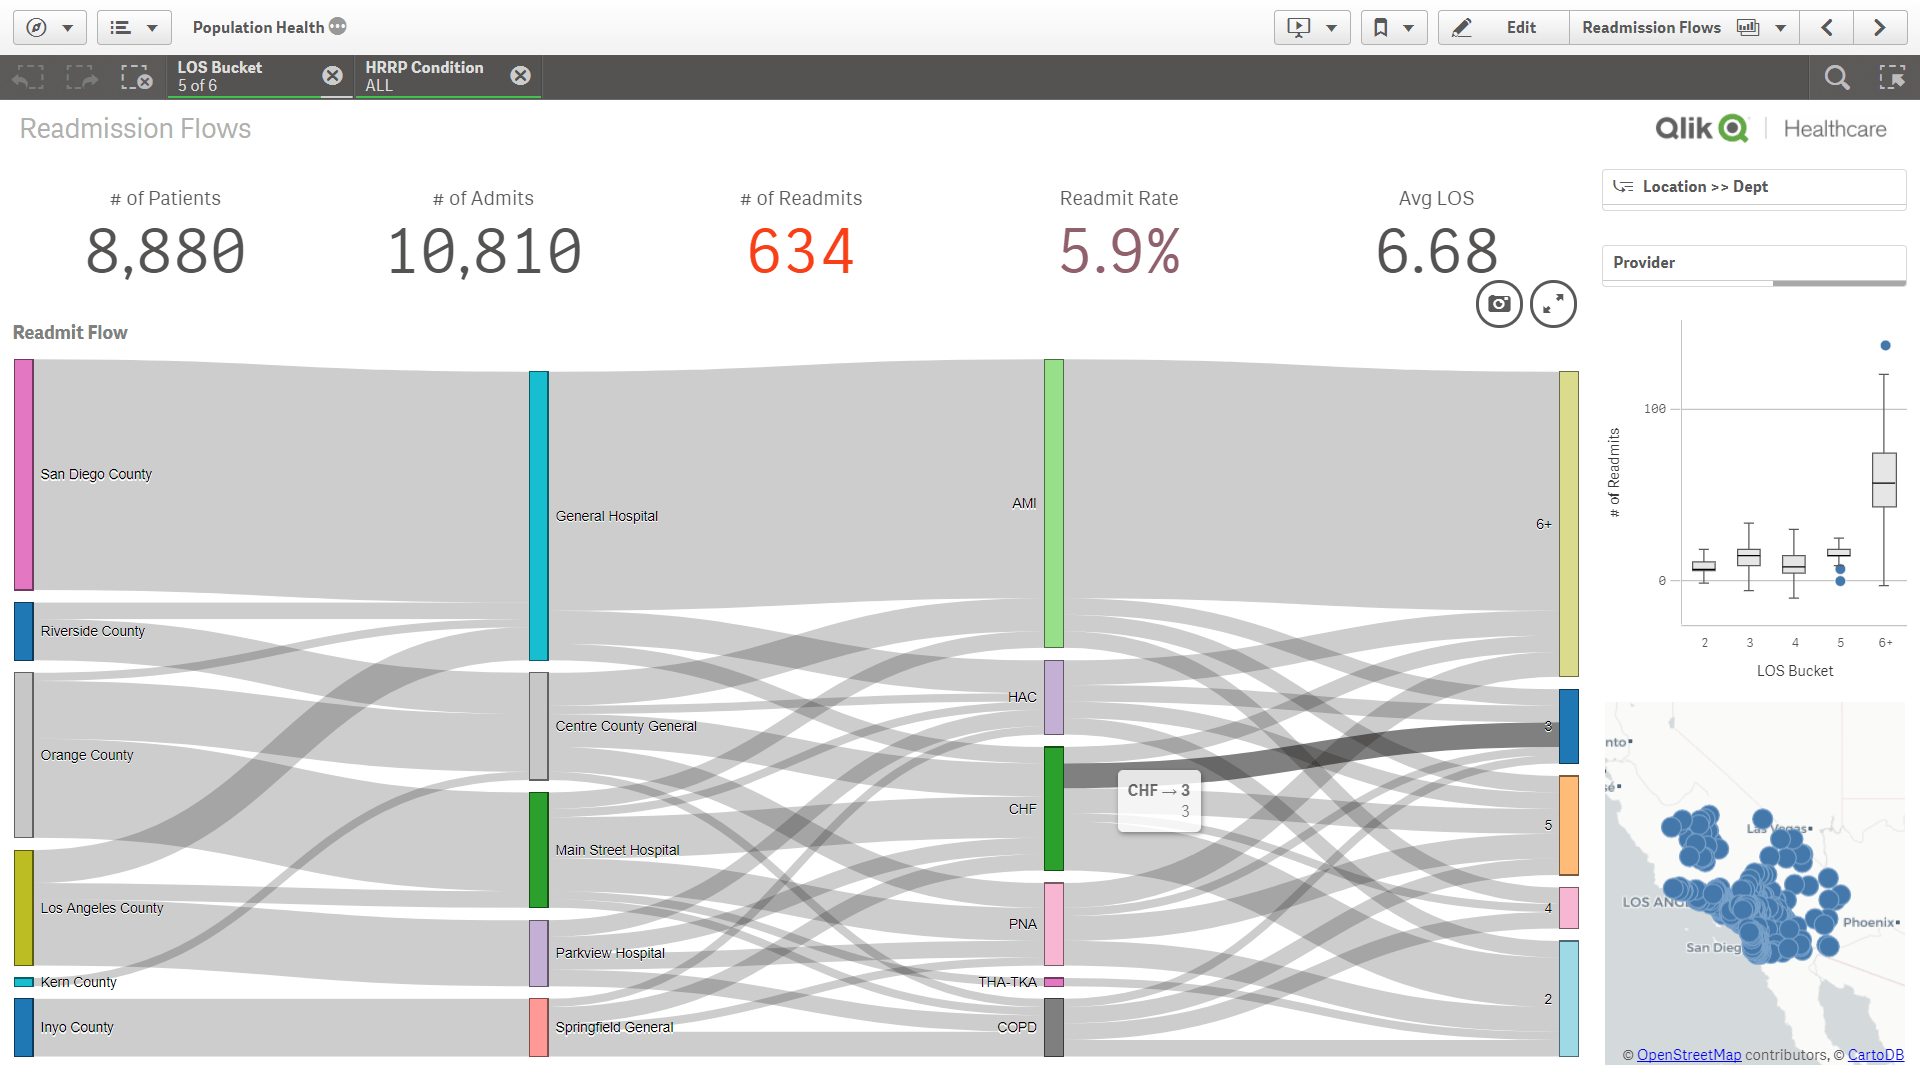 how to do a sankey diagram cobra cb radio wiring visualizing paths and flow with diagrams qlik community 2017 12 01 10 55 06 population health readmission flows sheets use cases for the